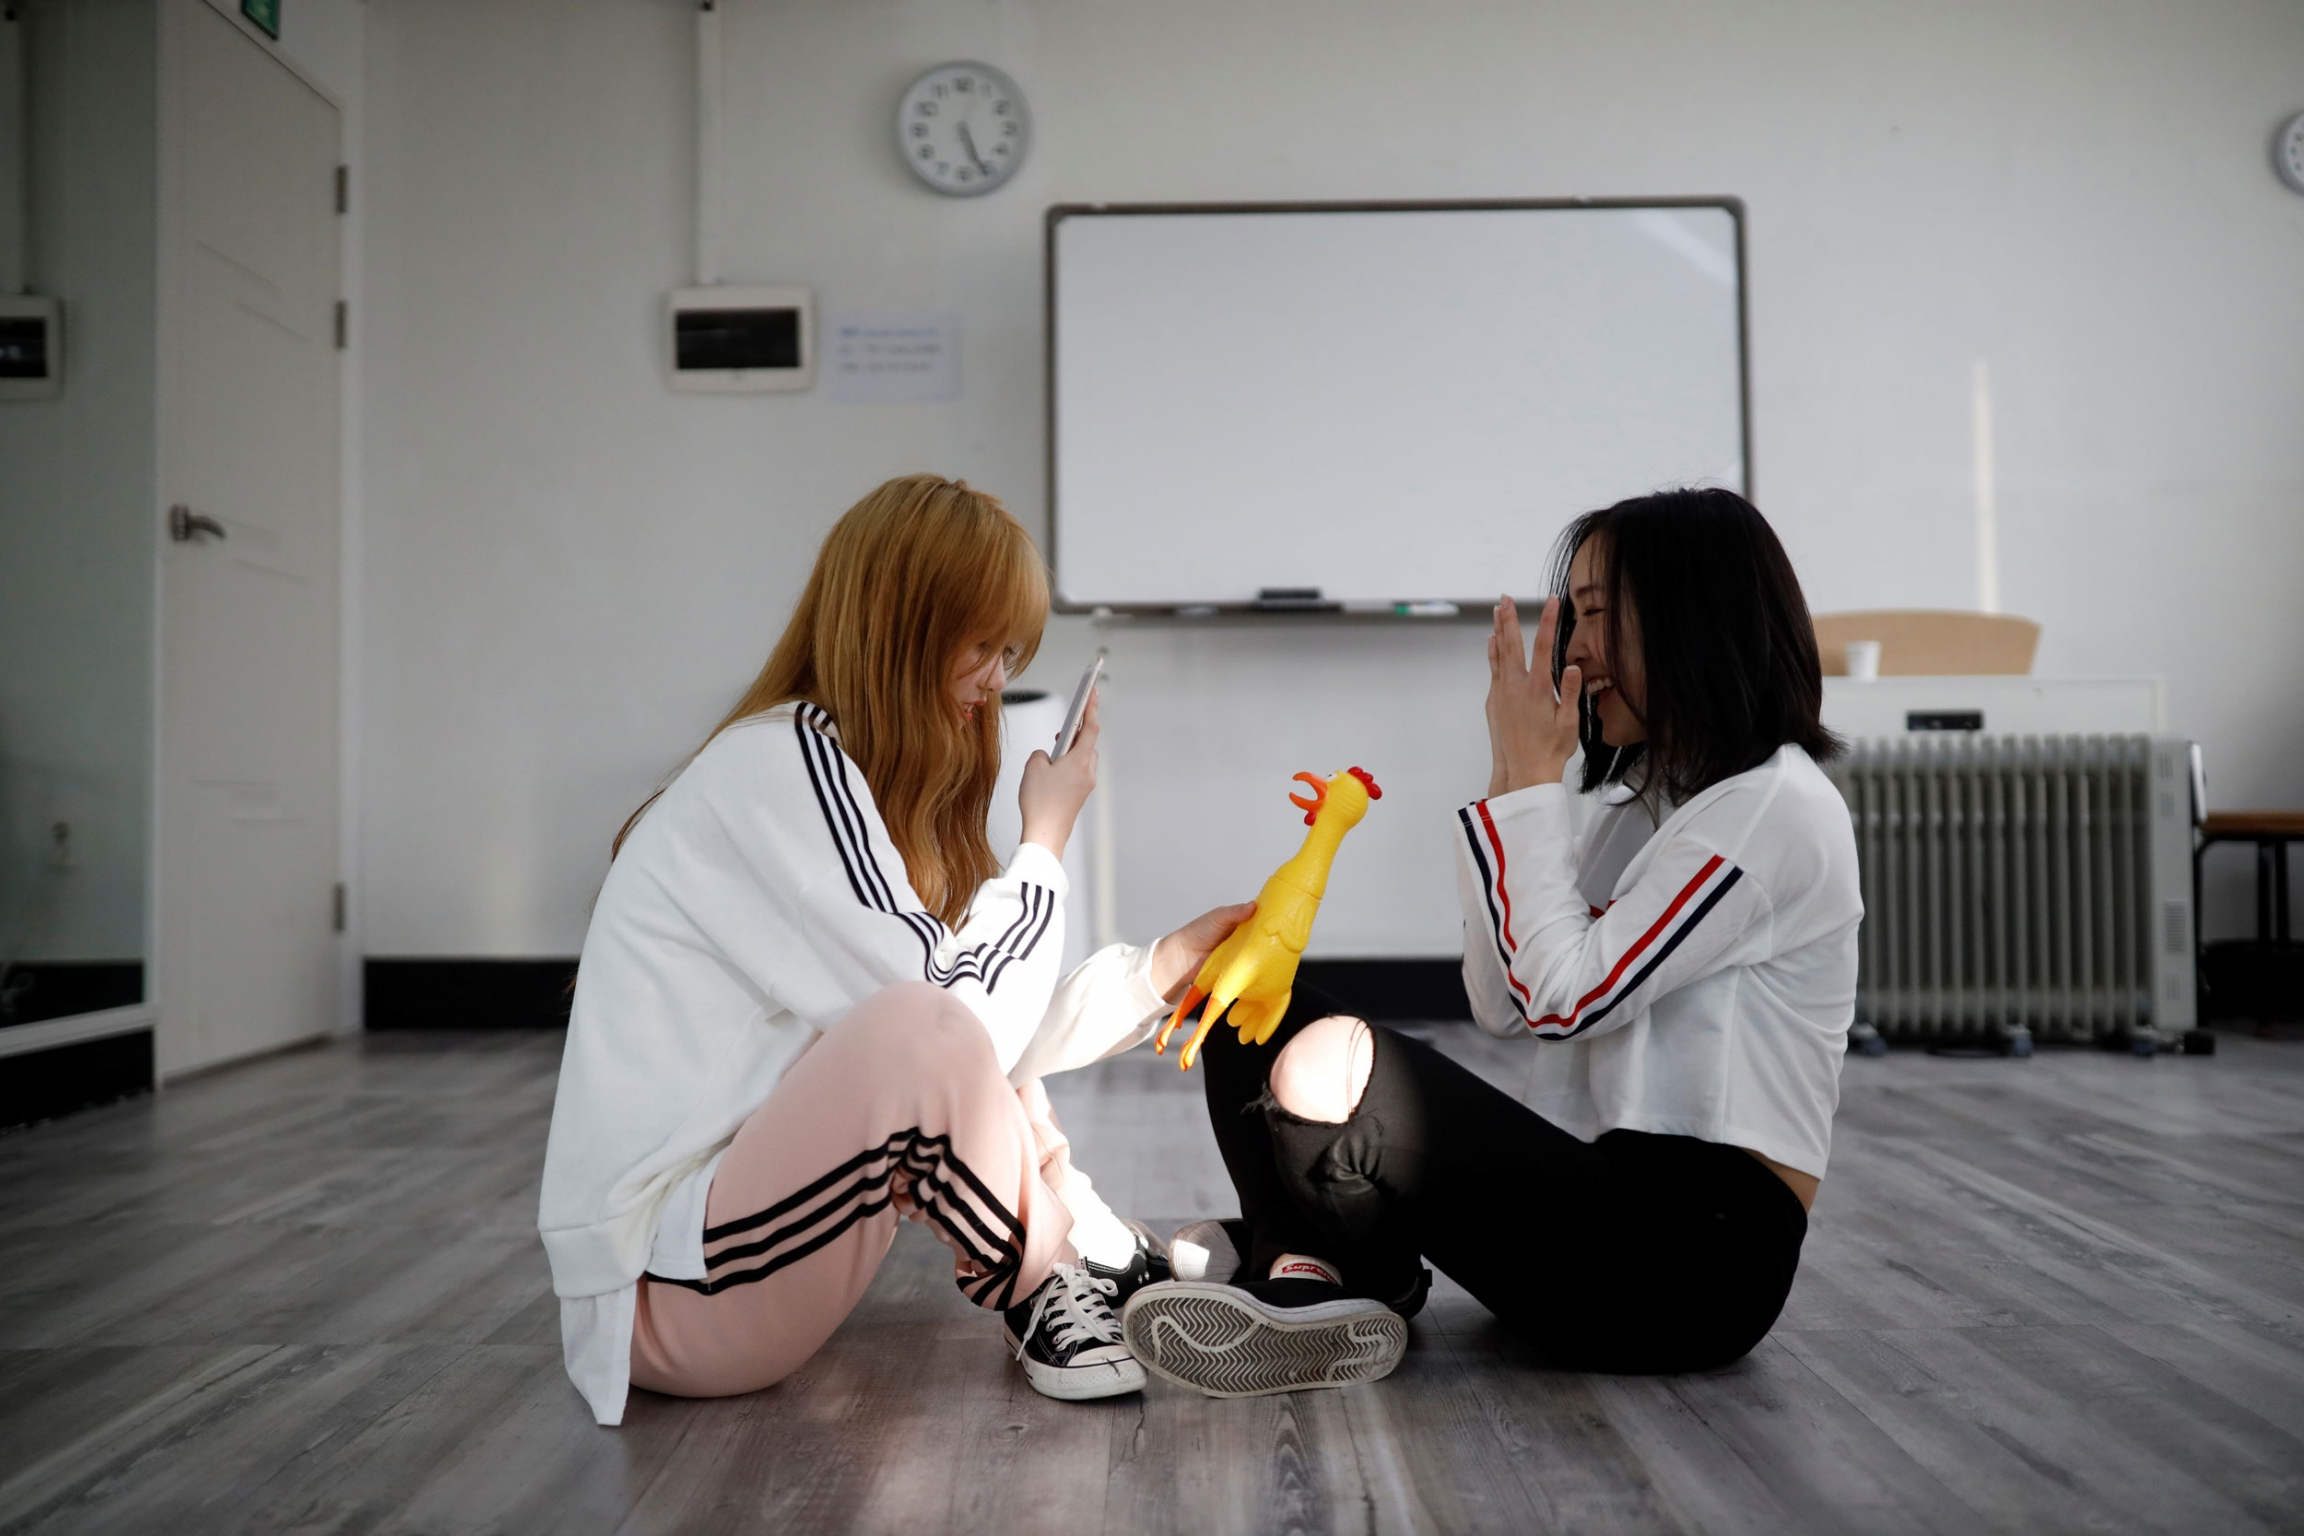 Two young women are shown sitting on the floor with one holding a yellow rubber chicken and taking a photo with her mobile phone.